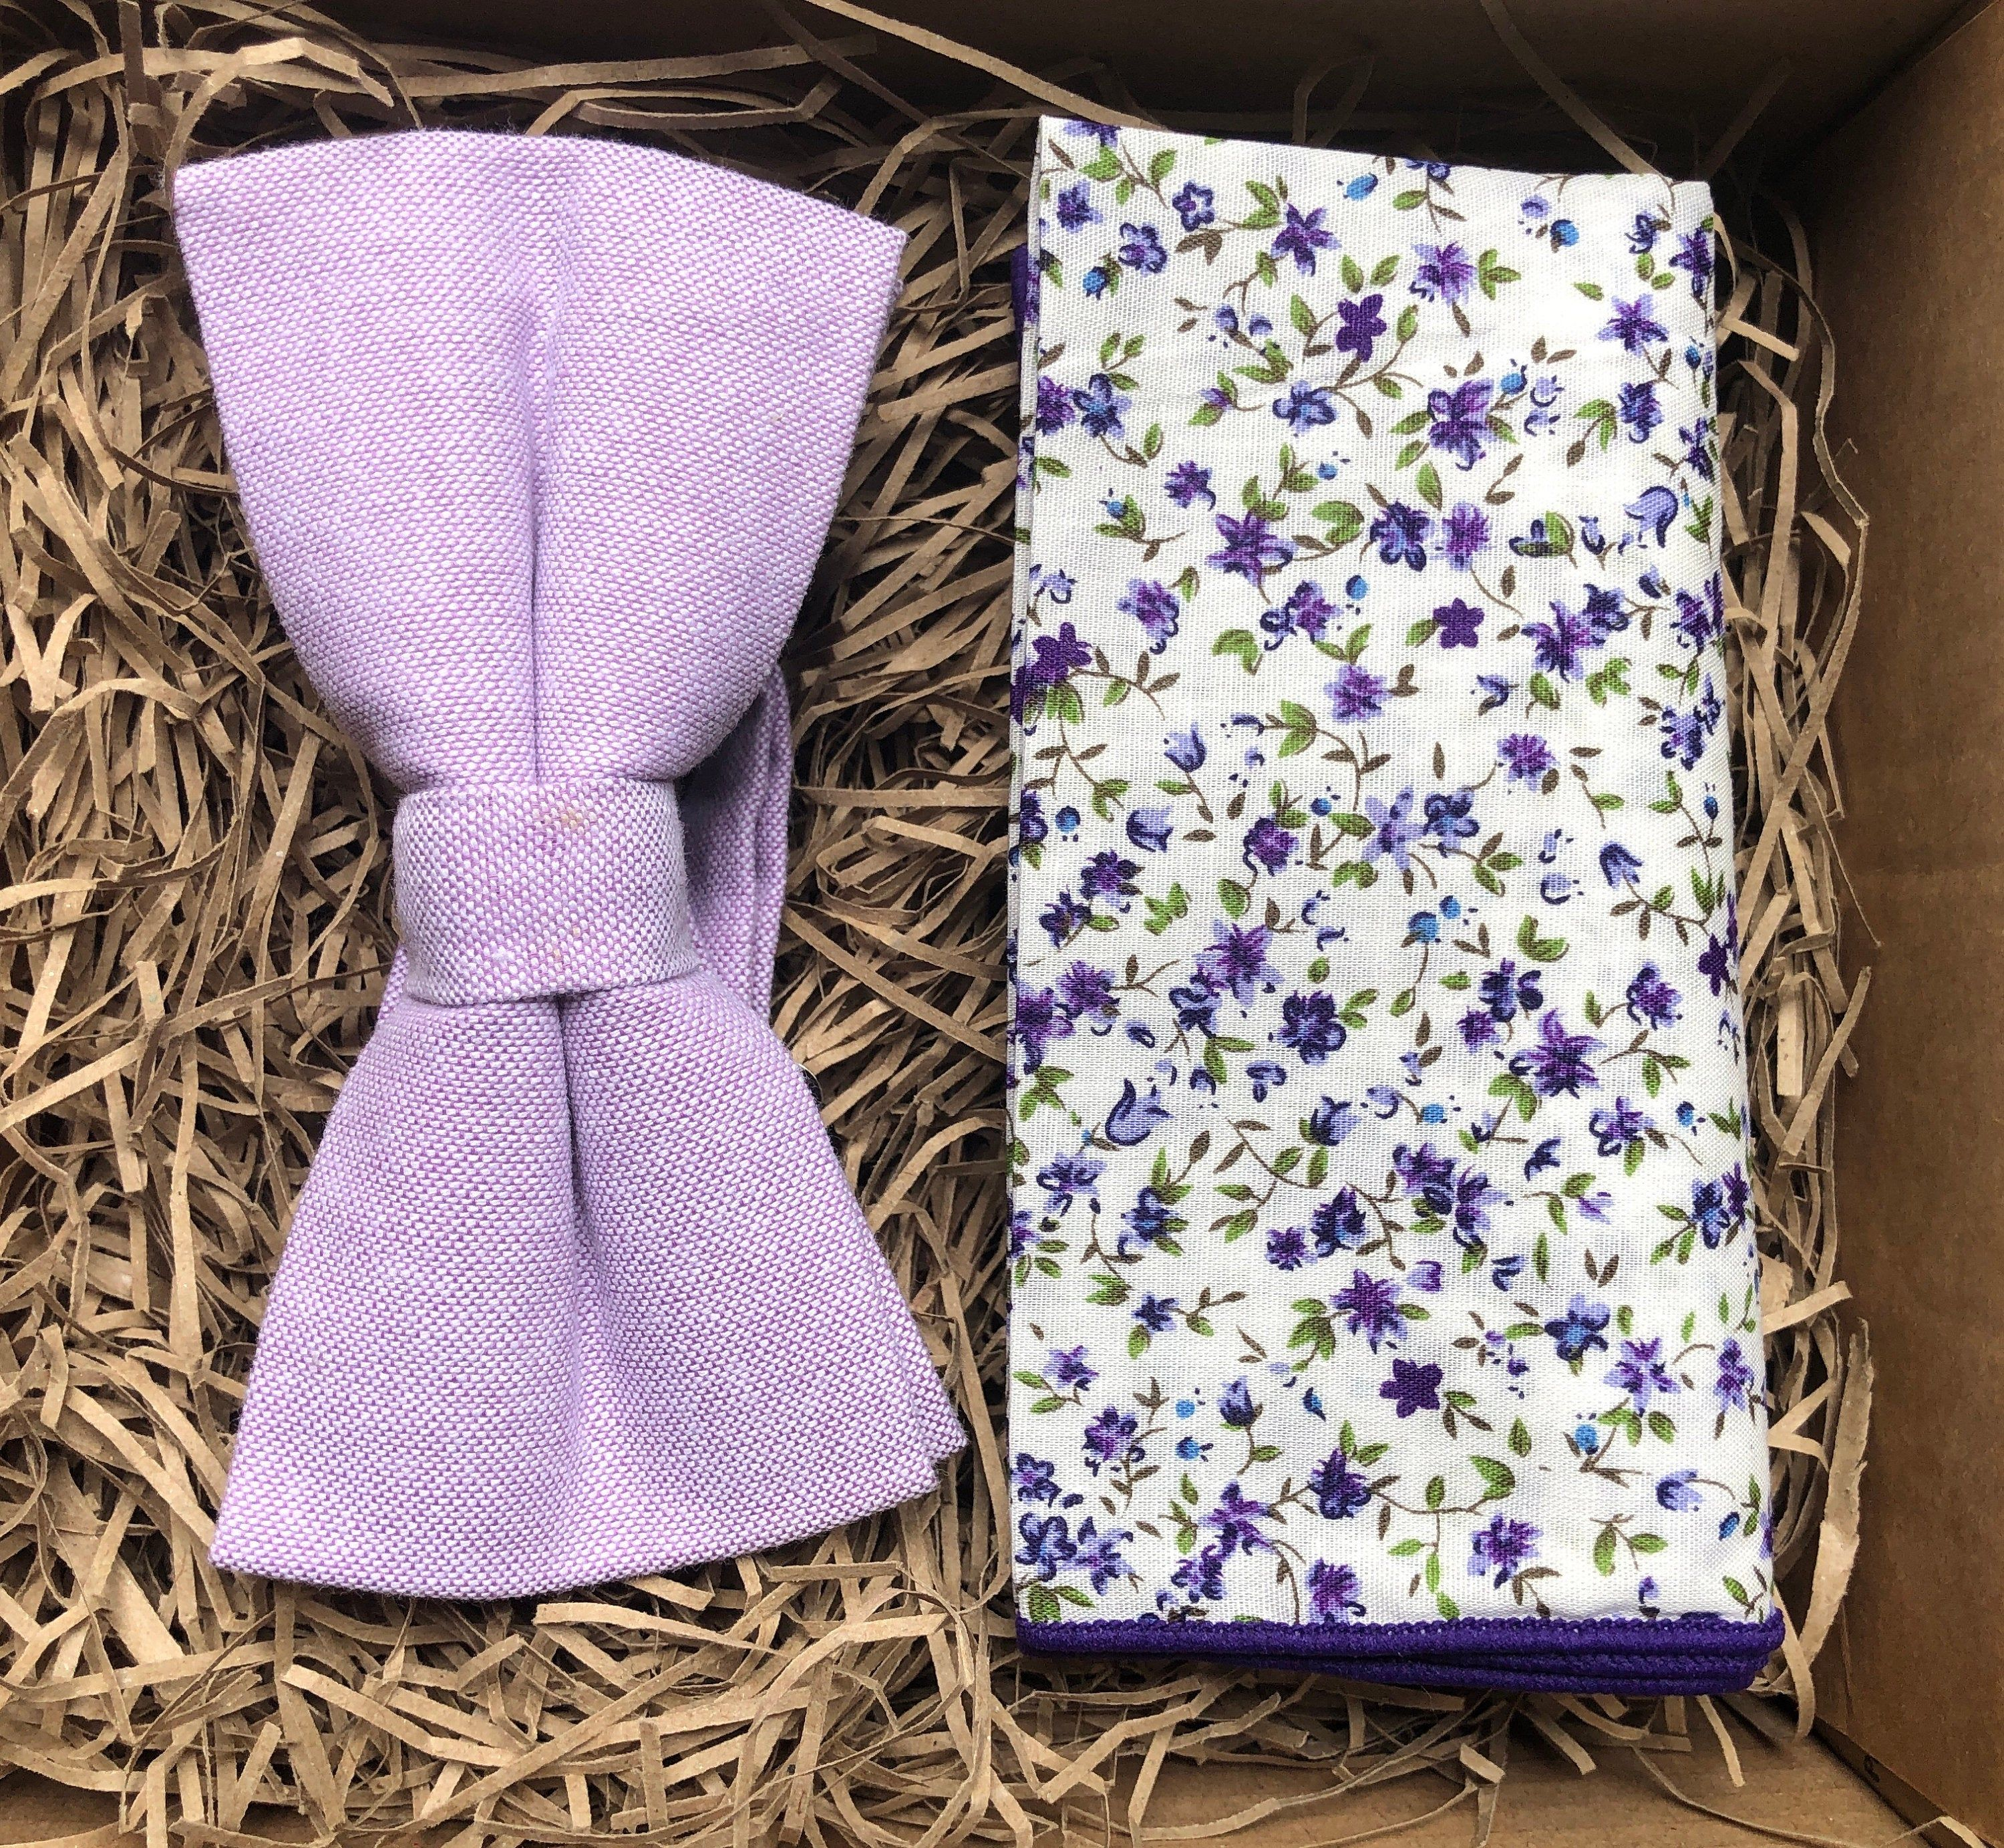 The Clover Galaxy Lavender Bow Tie Floral Pocket Square Etsy Floral Pocket Purple Bow Tie Tie And Pocket Square